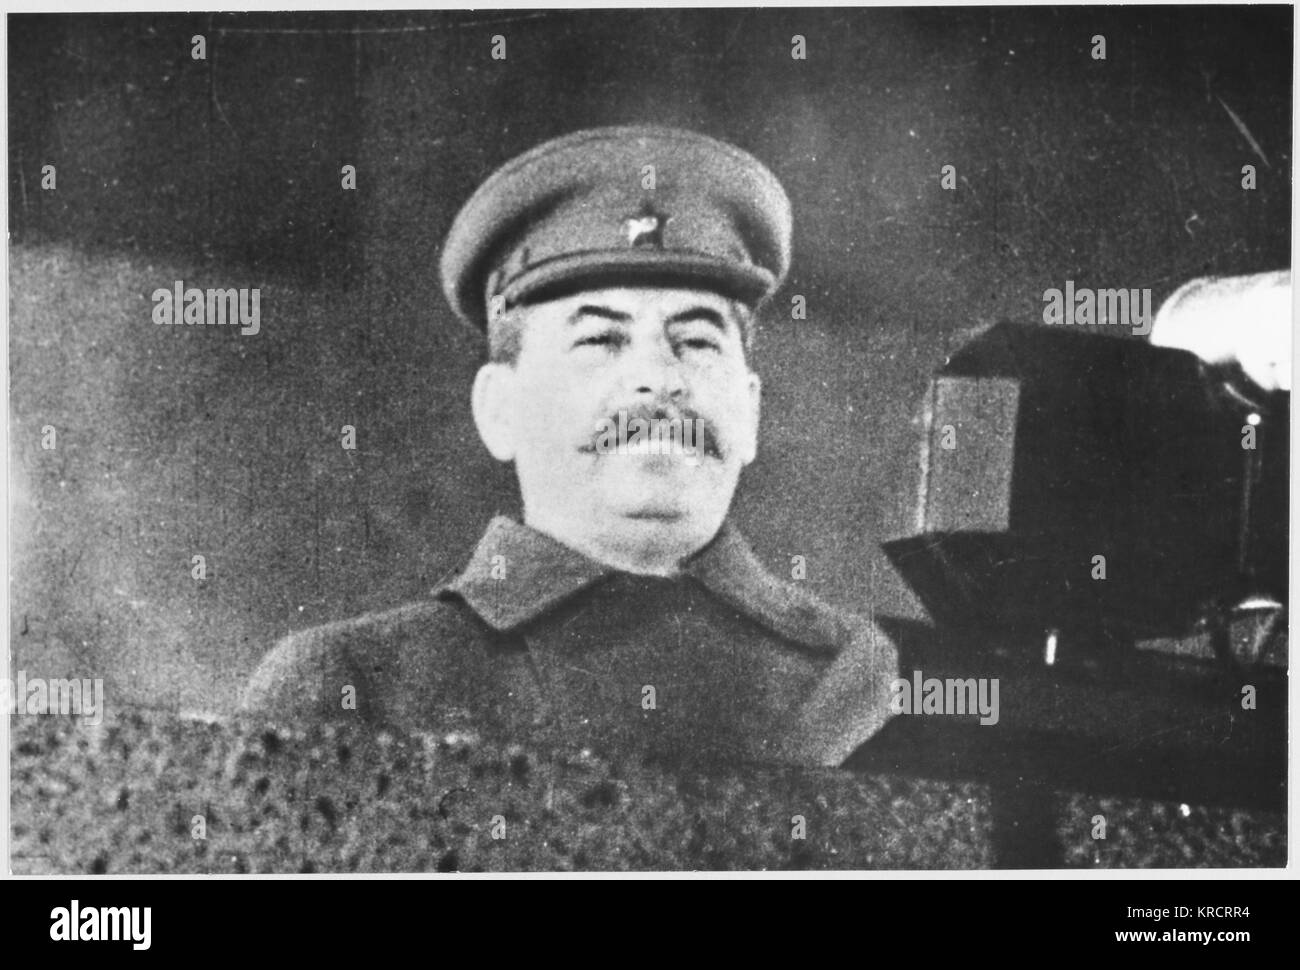 Stalin attends a rally in Red Square, Moscow. Date: November 1941 - Stock Image